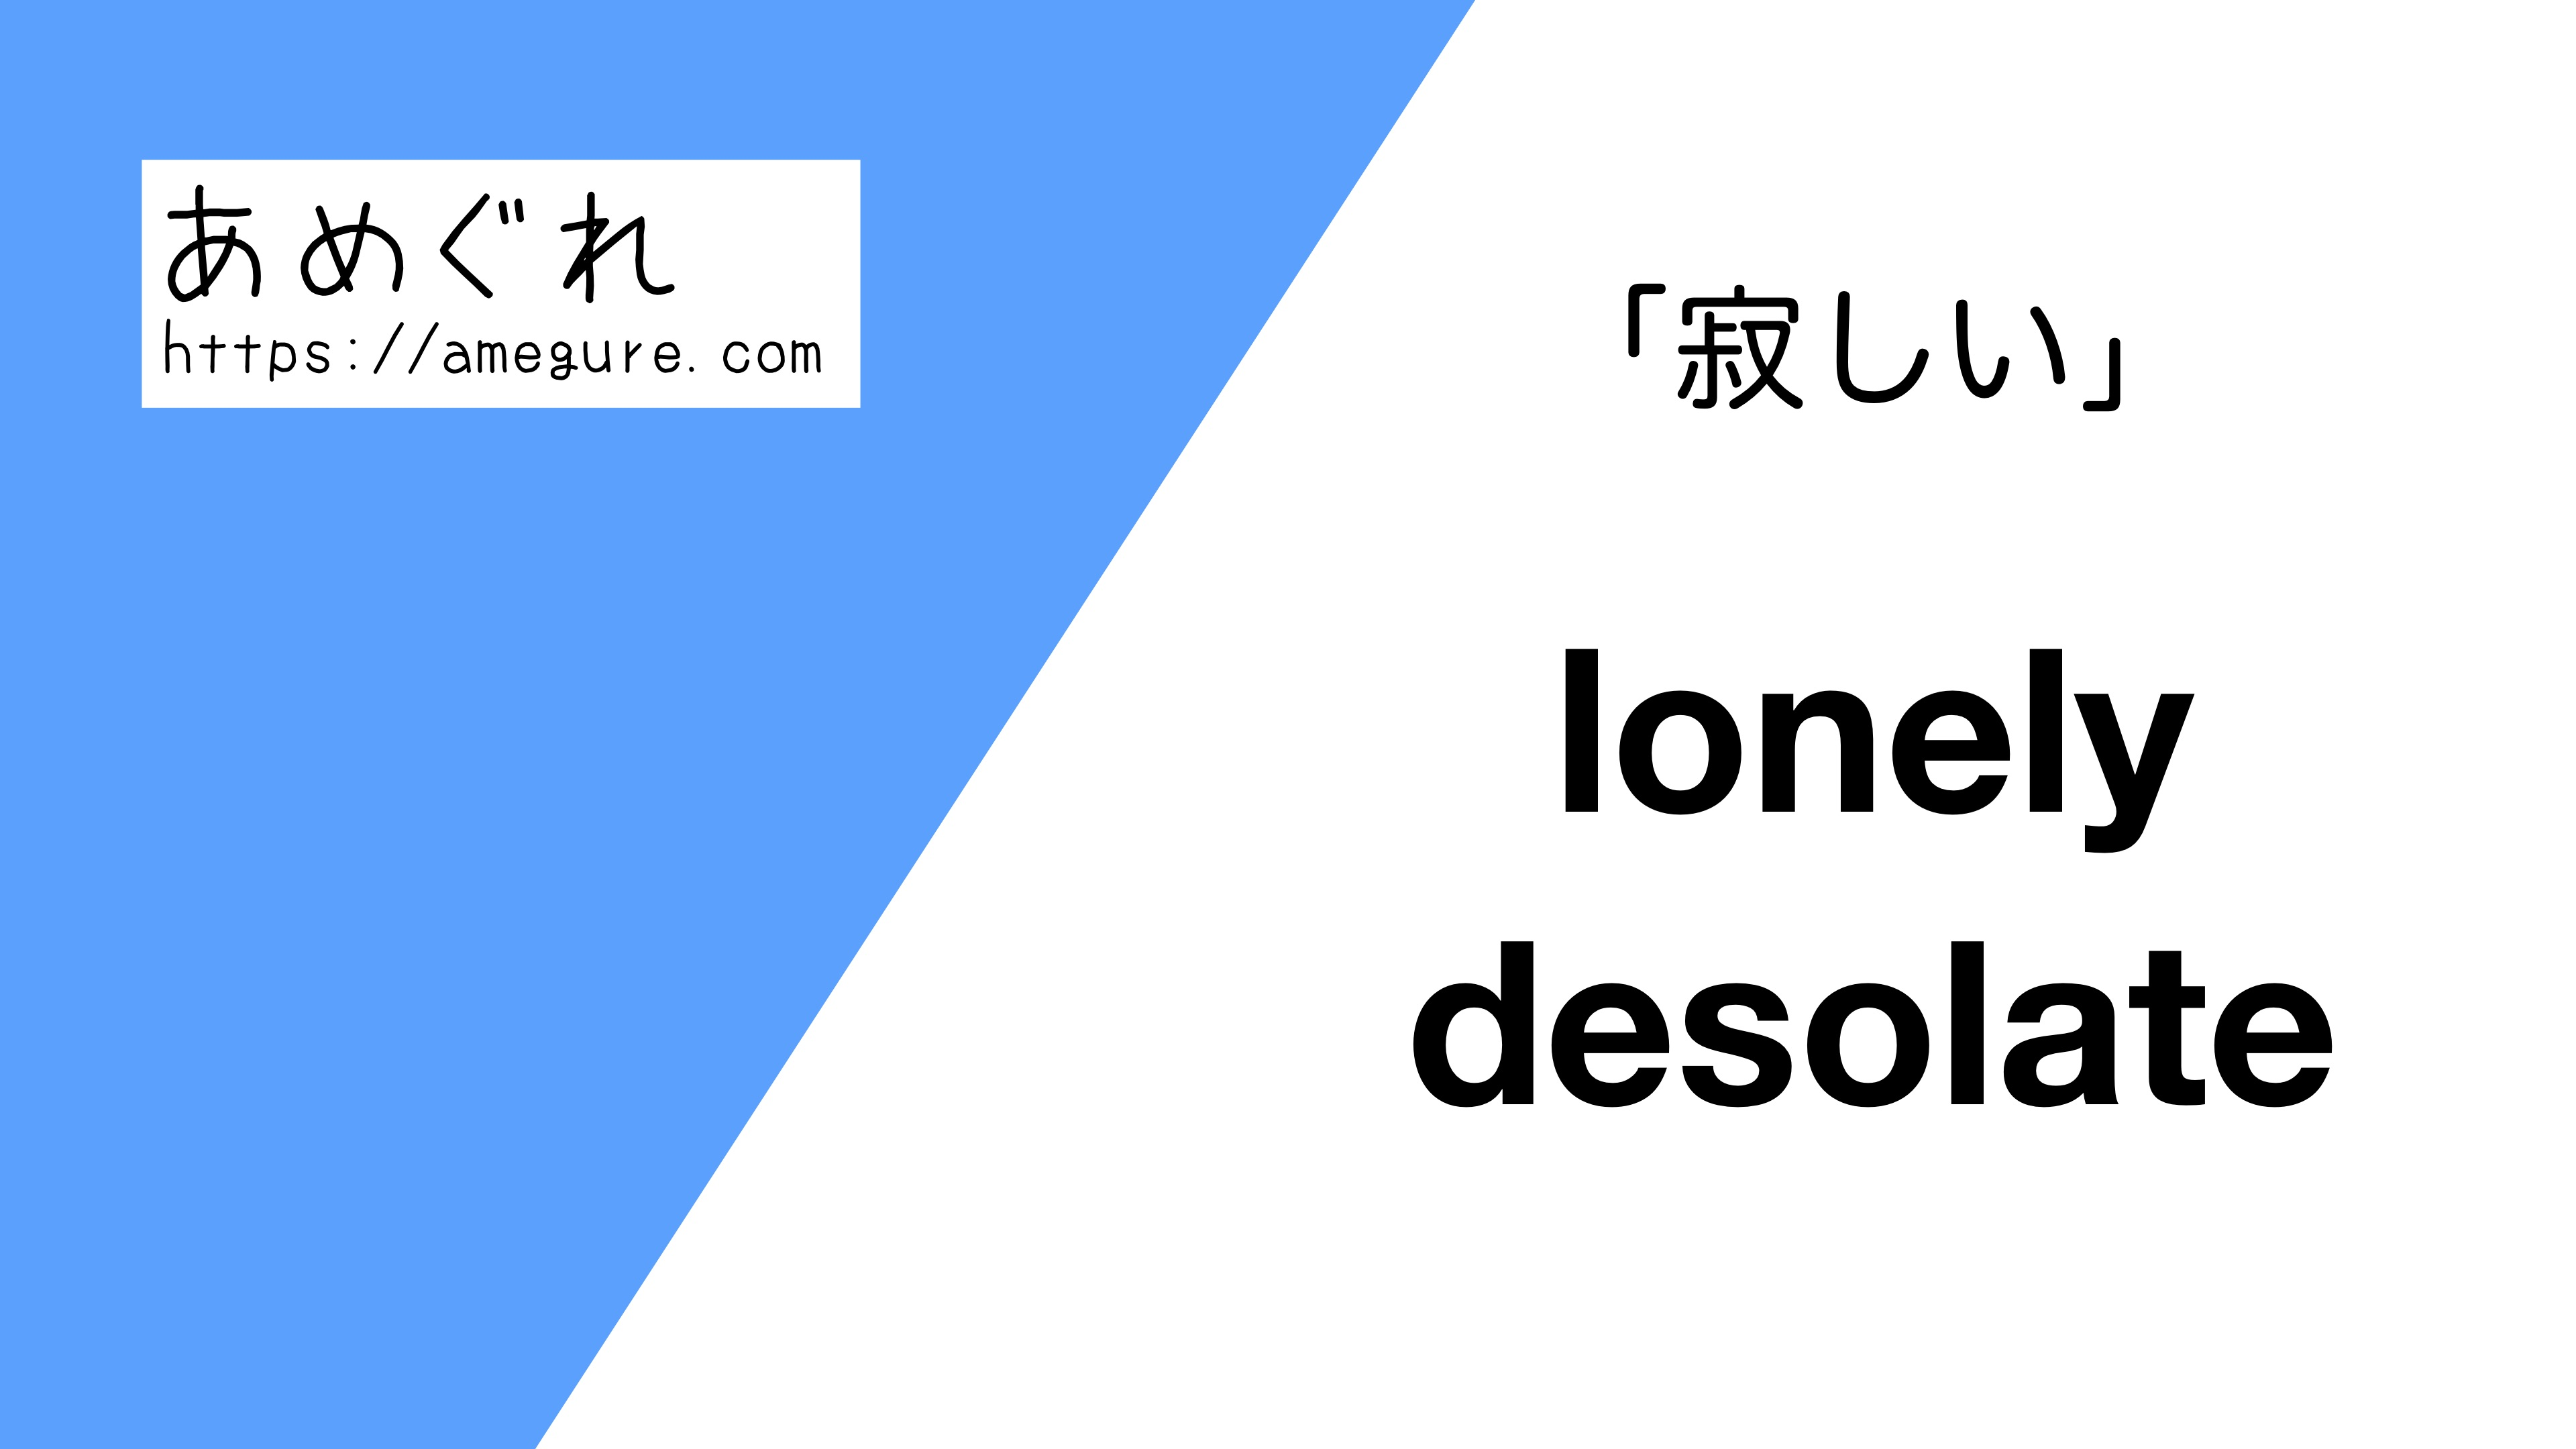 lonely-desolate違い